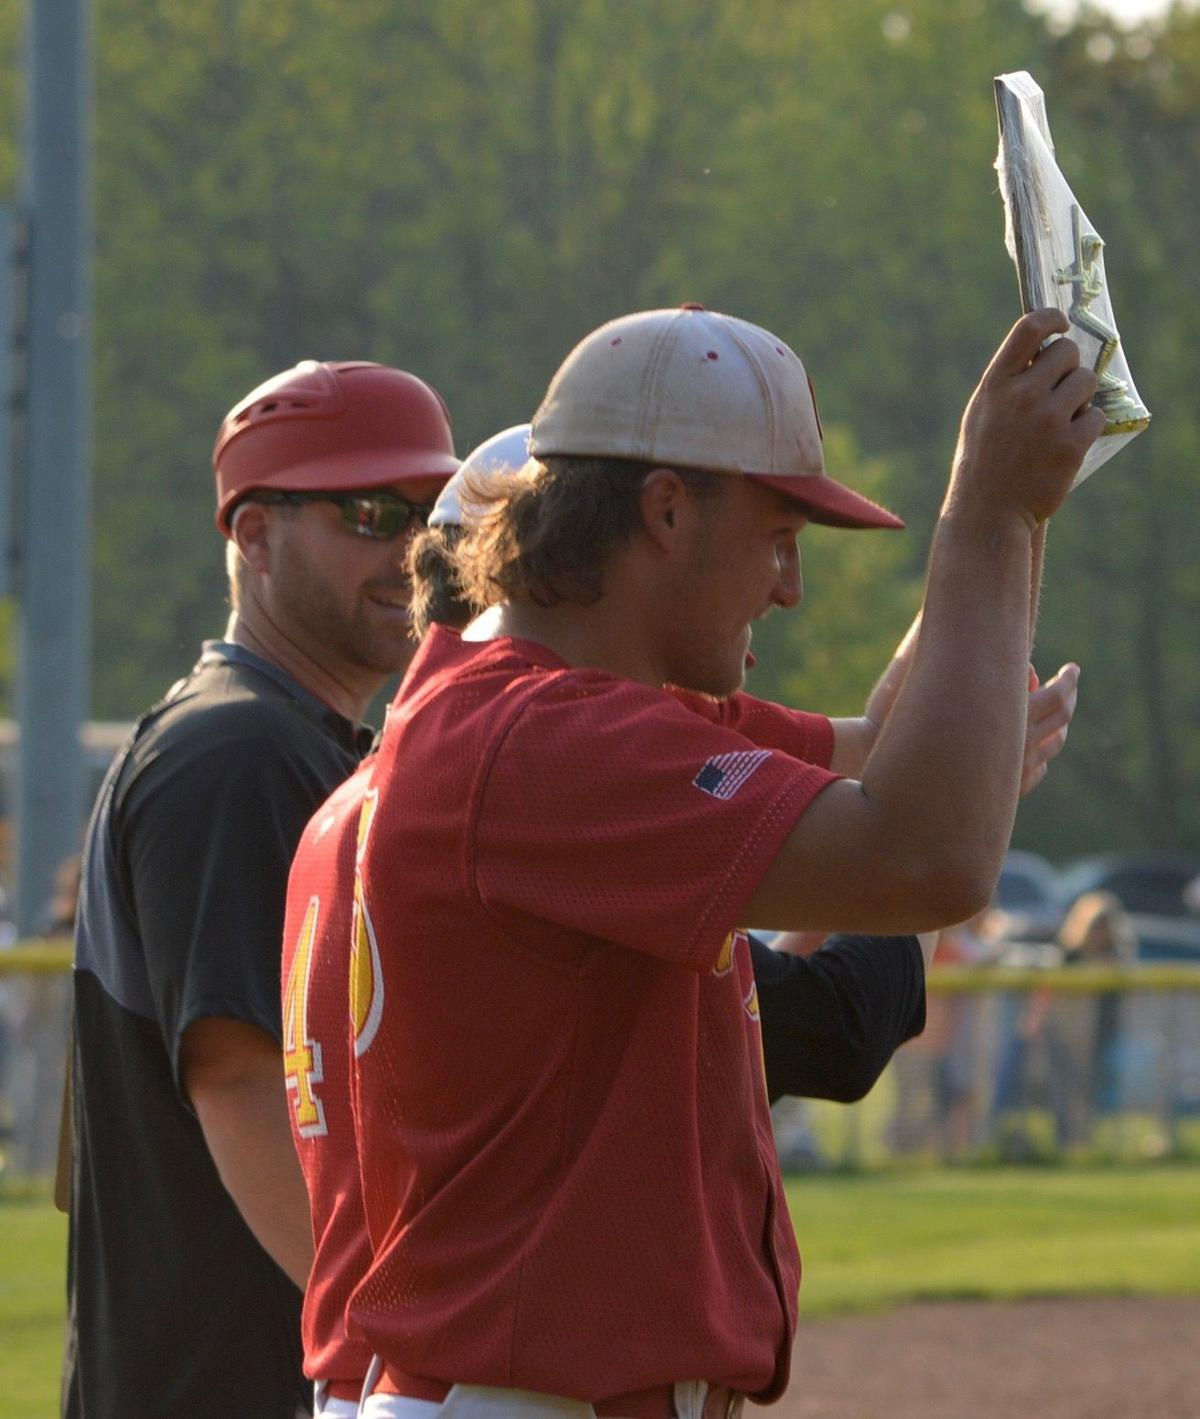 Olean Class Cars: Pitching Depth Could Have Olean, A-L In Title Contention